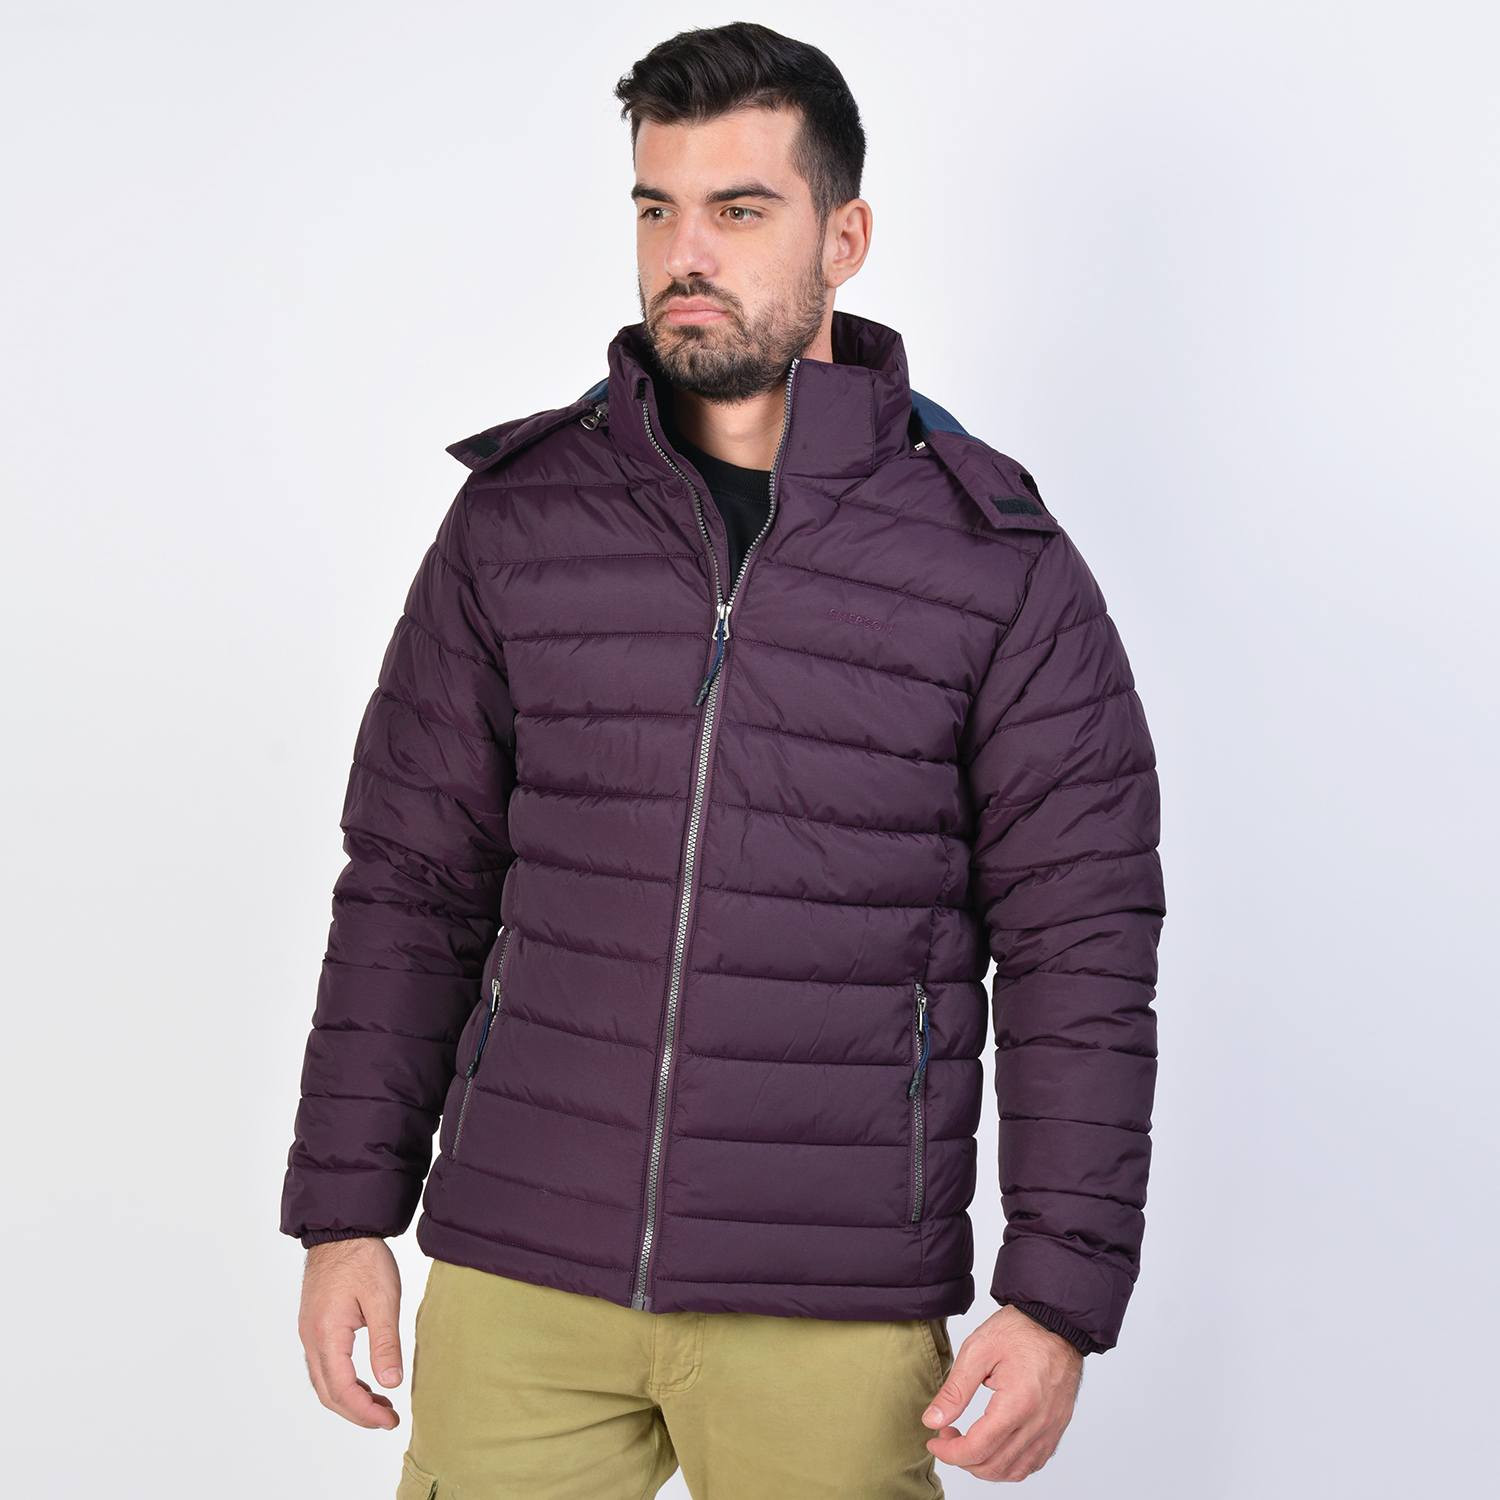 Emerson Men's P.p.down Jacket With Hood (9000036087_40974)